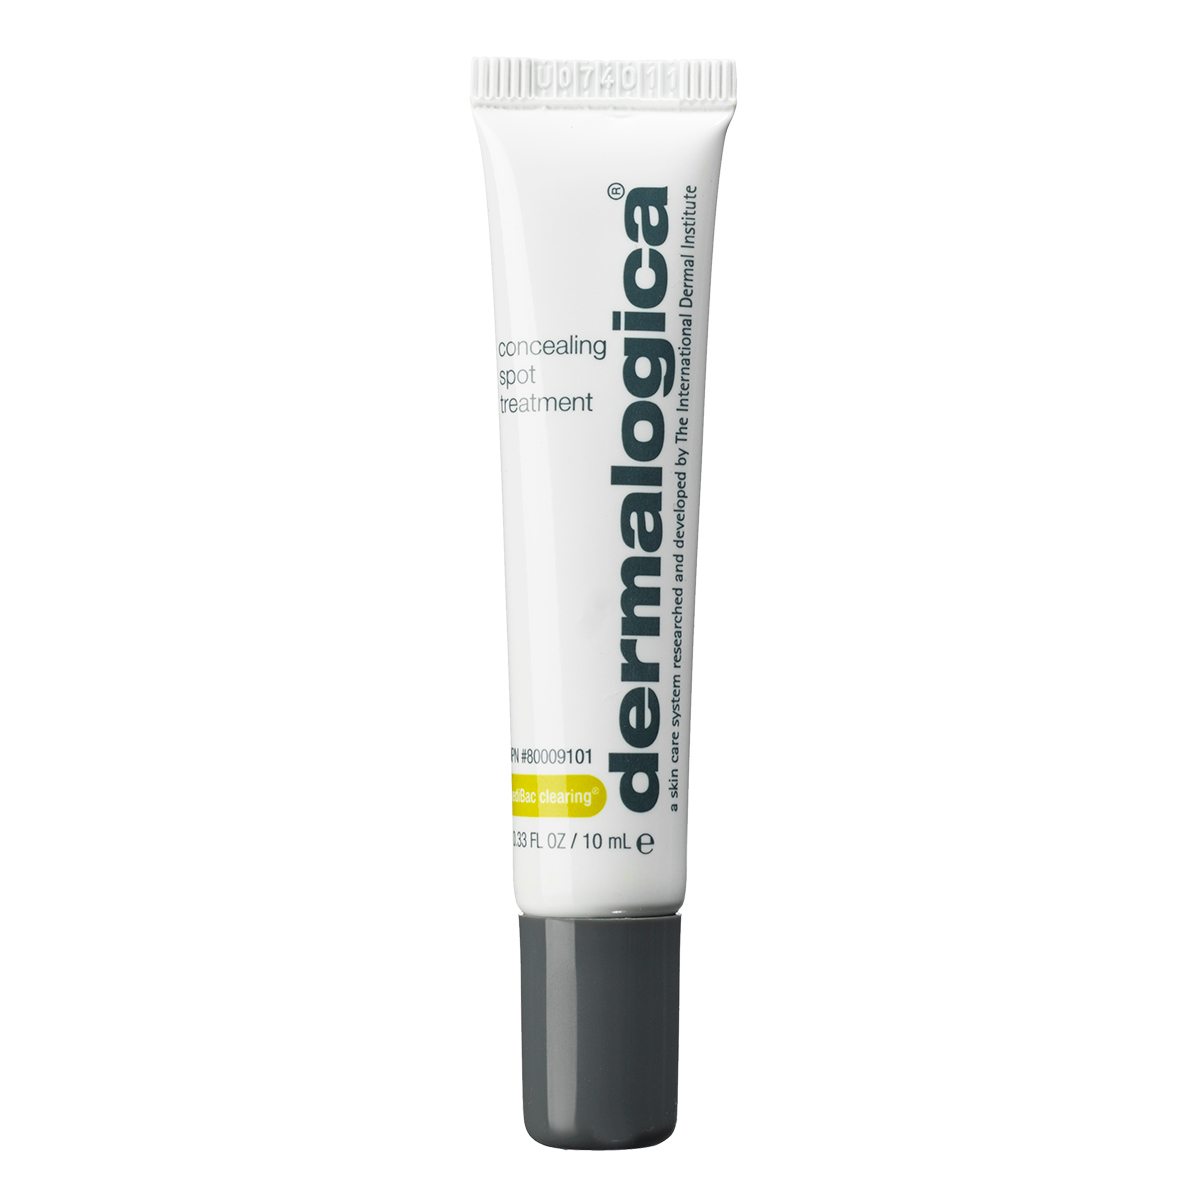 Image of   Dermalogica Concealing Spot Treatment - 10 ml